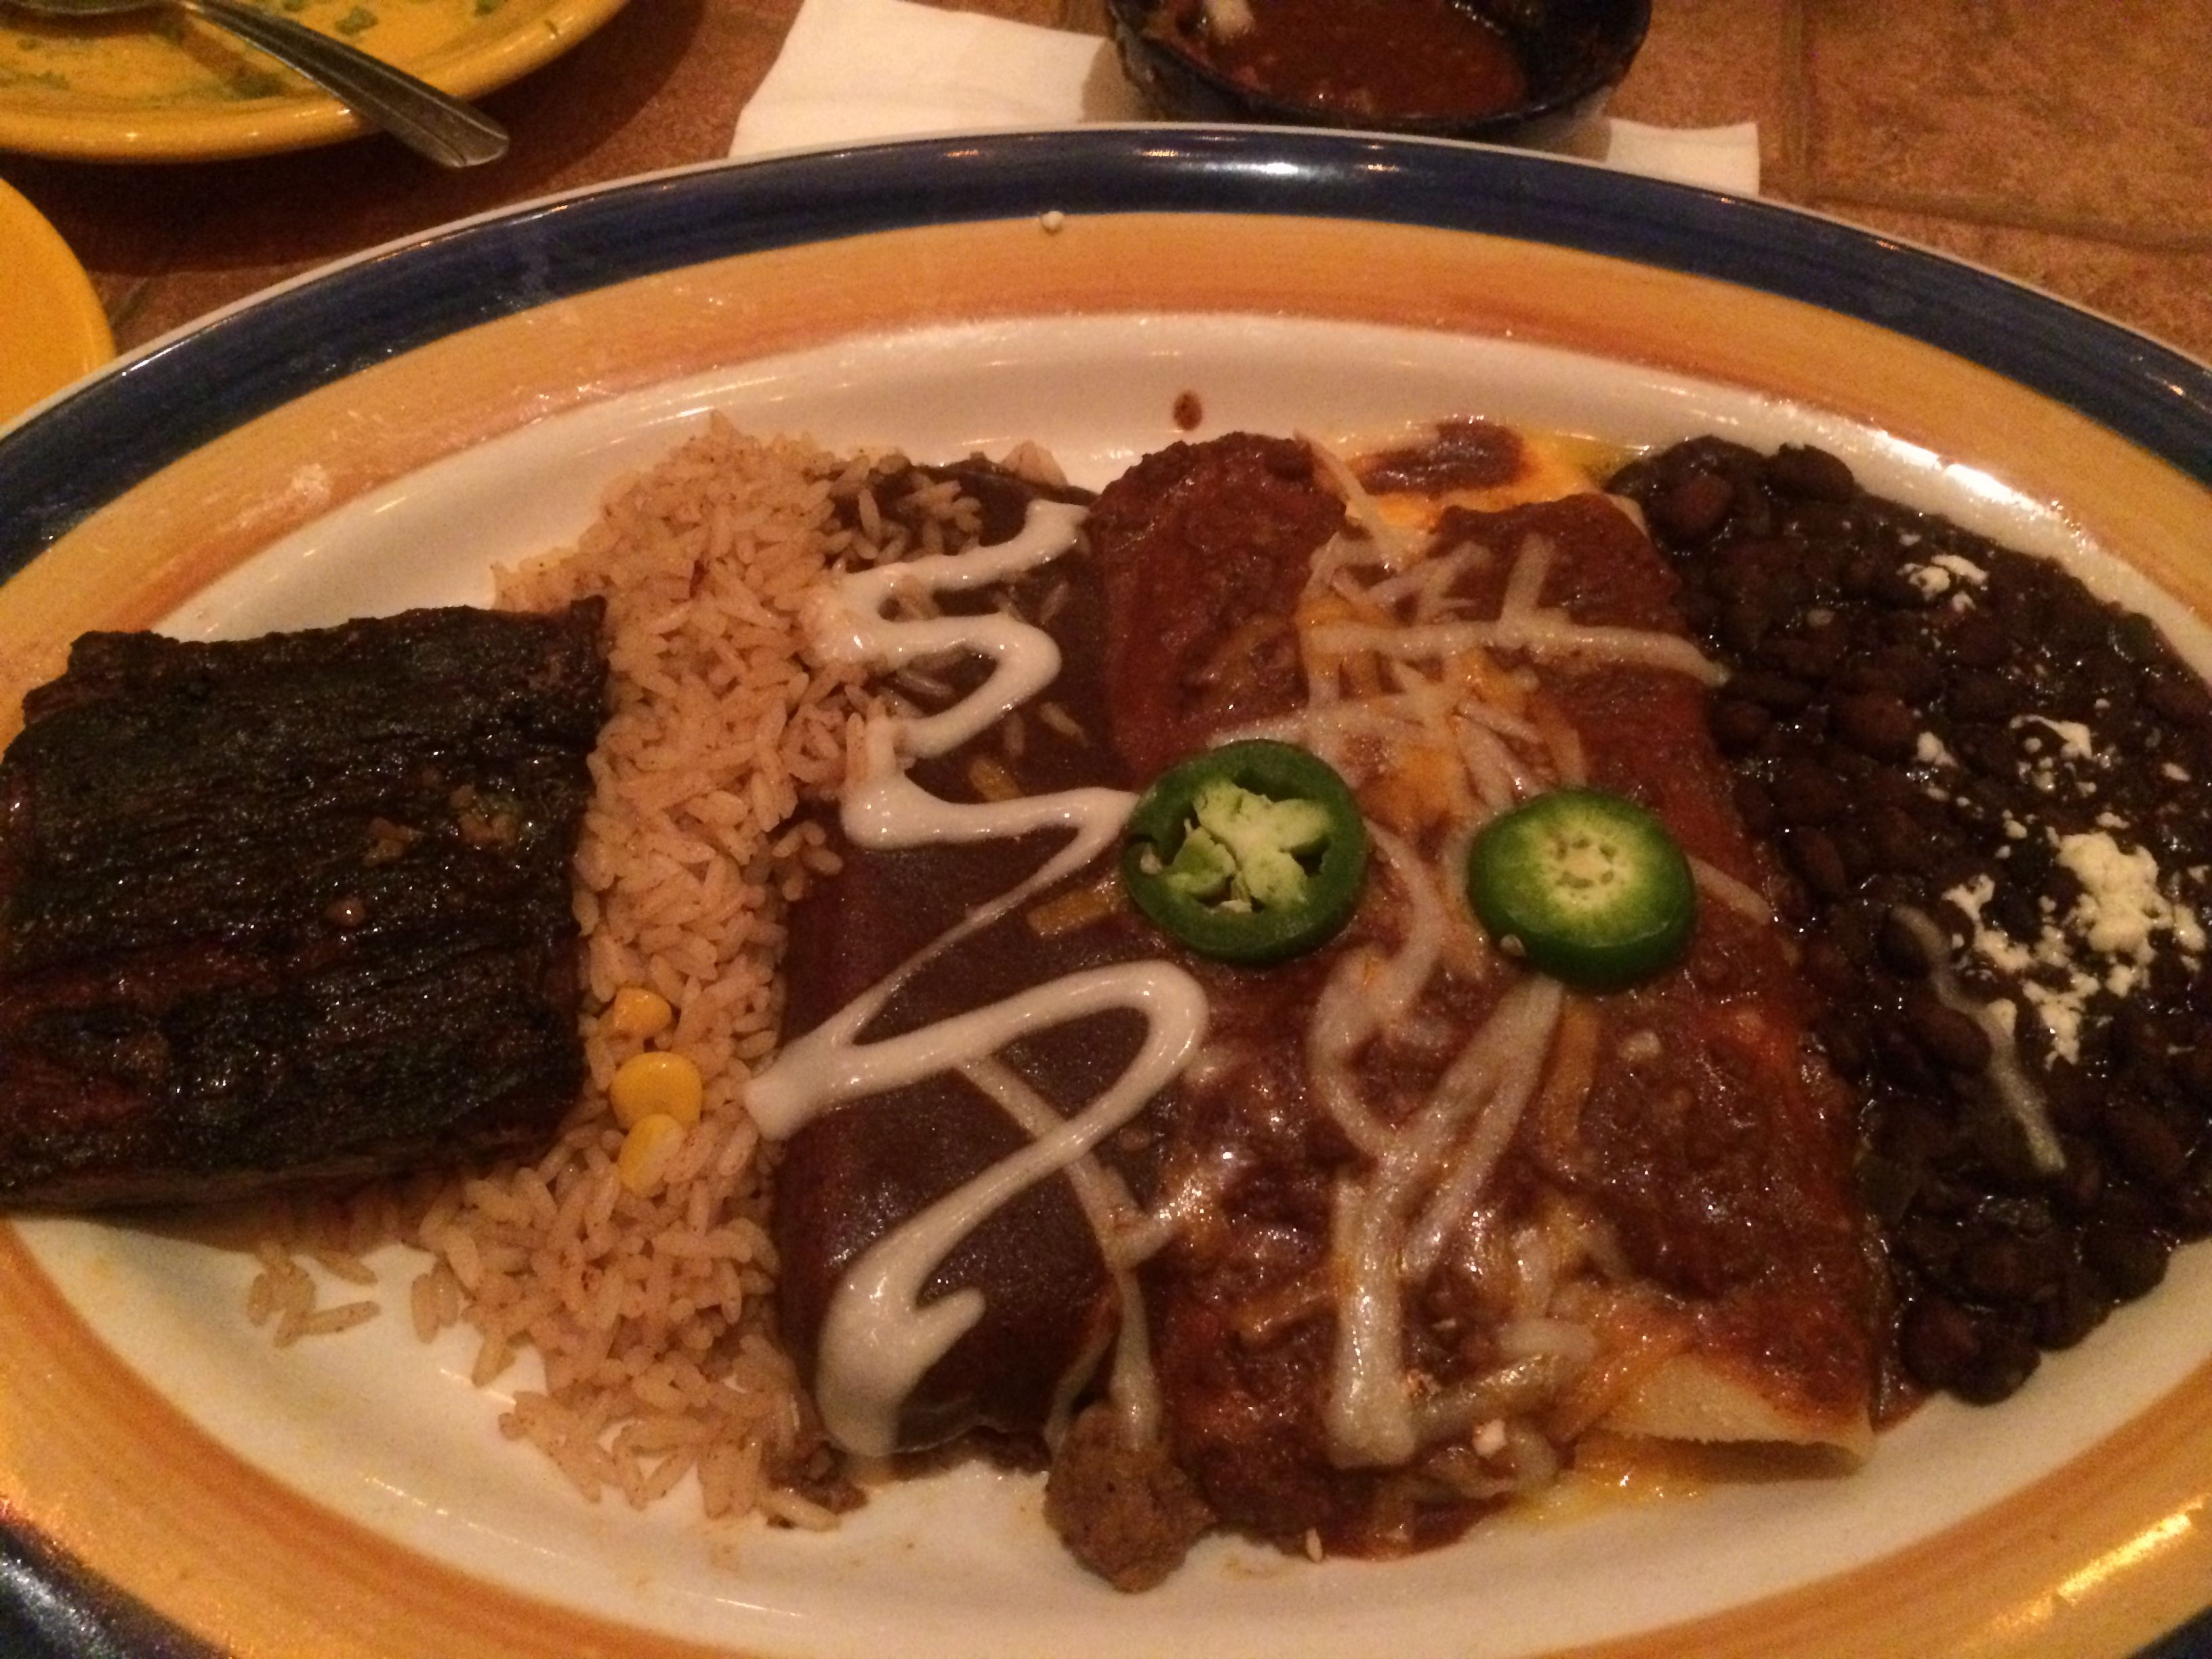 This was my combo plate at On The Border Mexican Grill & Cantina in ...